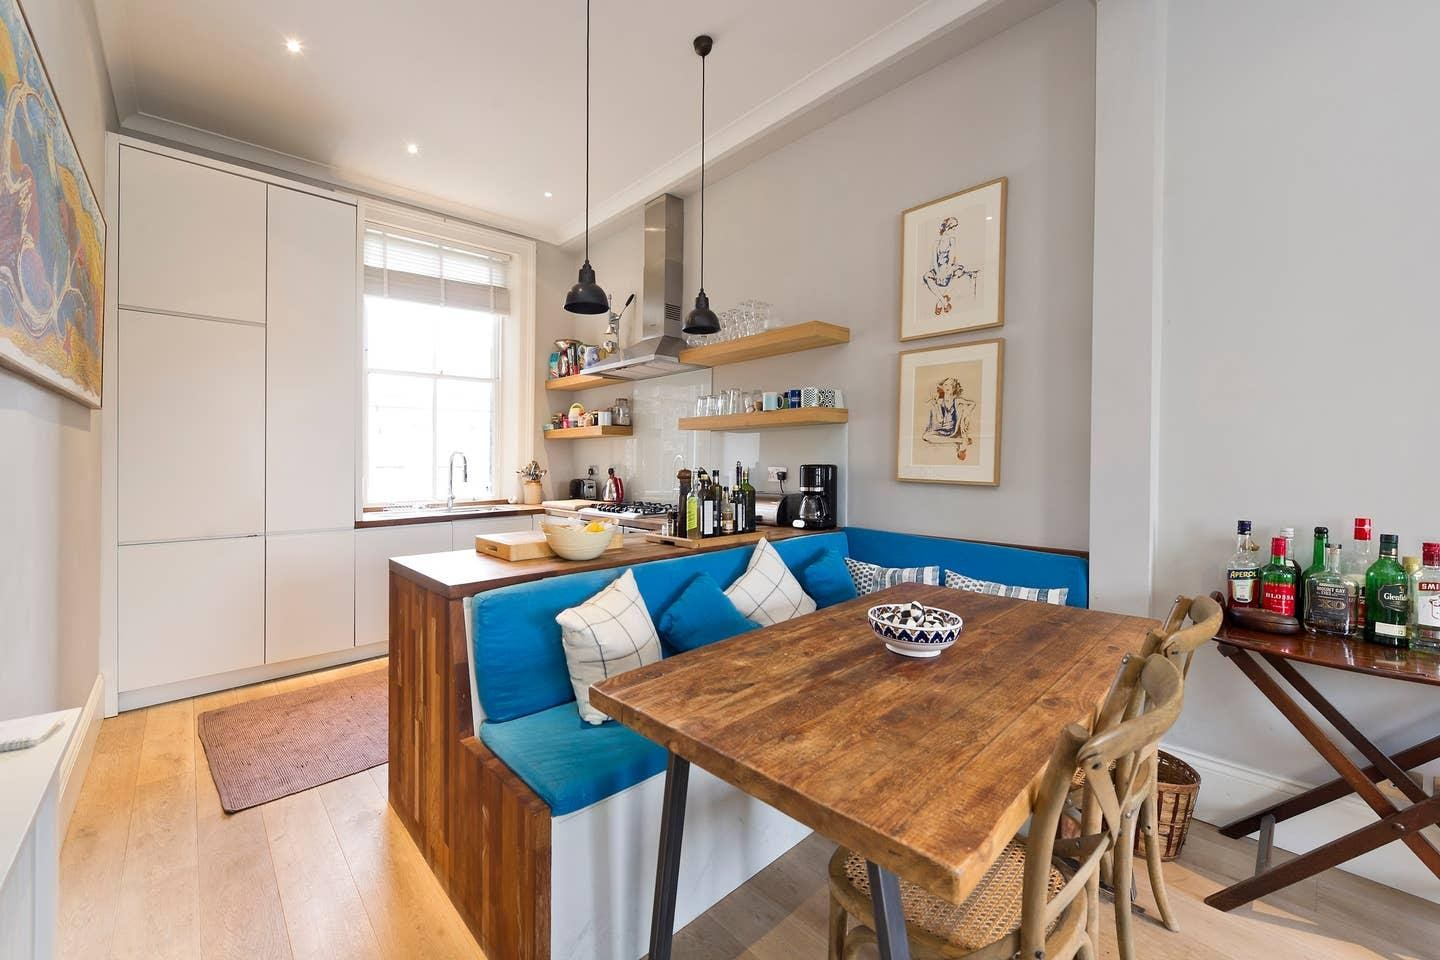 Property Image 2 - Smart & Bright Apartment in Fulham